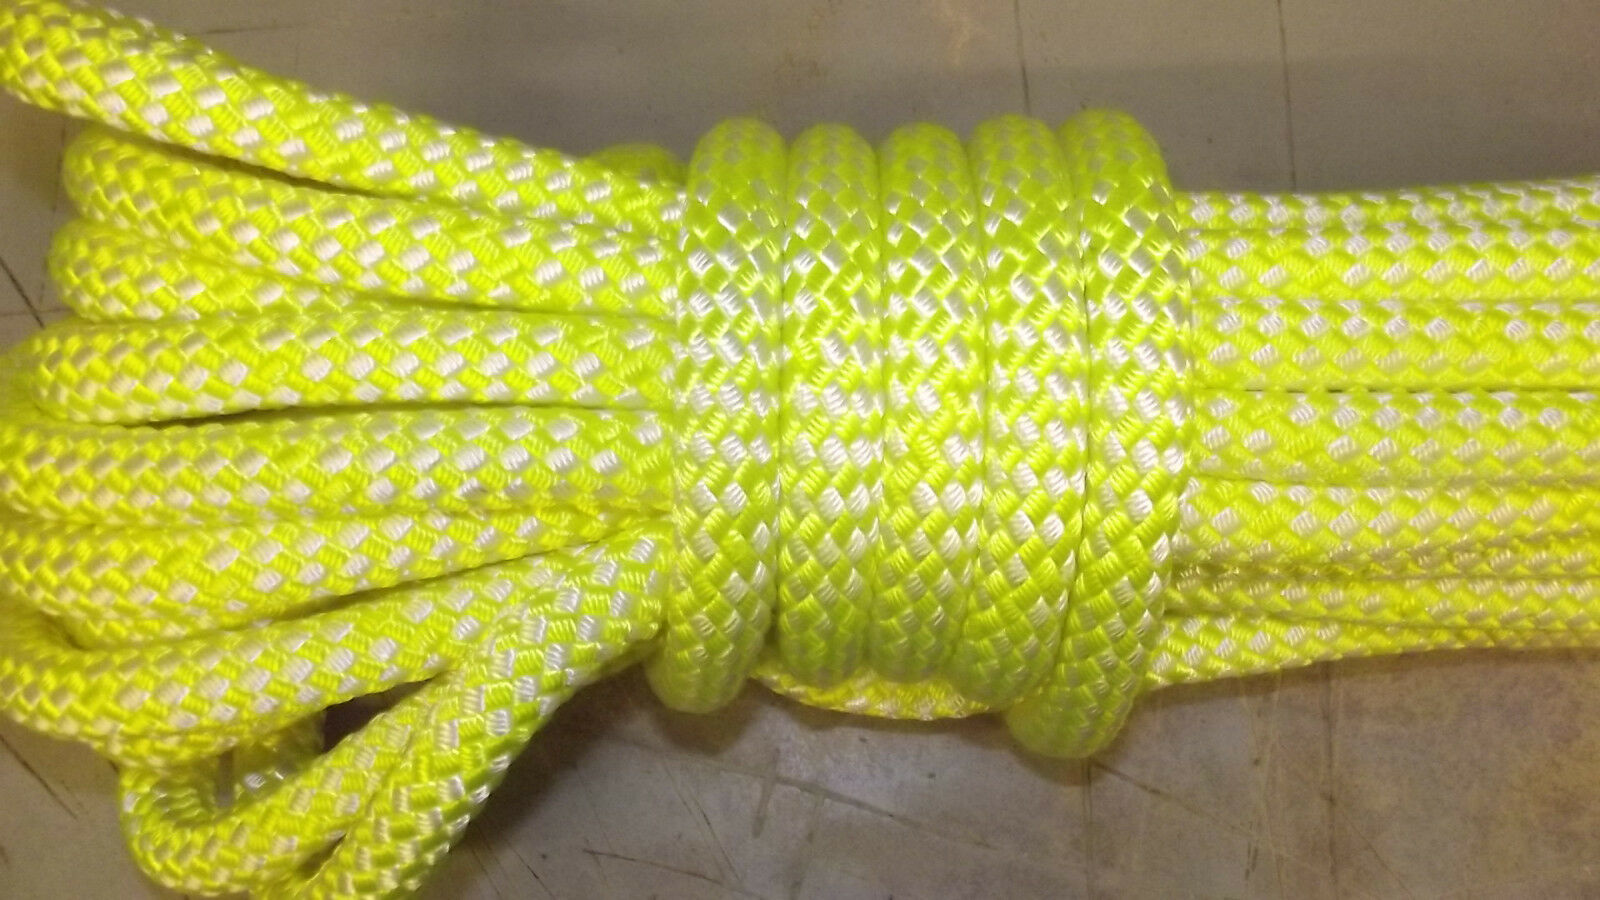 5 8  x 43' Double Braid Rope, Arborist Bull Rope, Rigging Line, Hoist Line, NEW